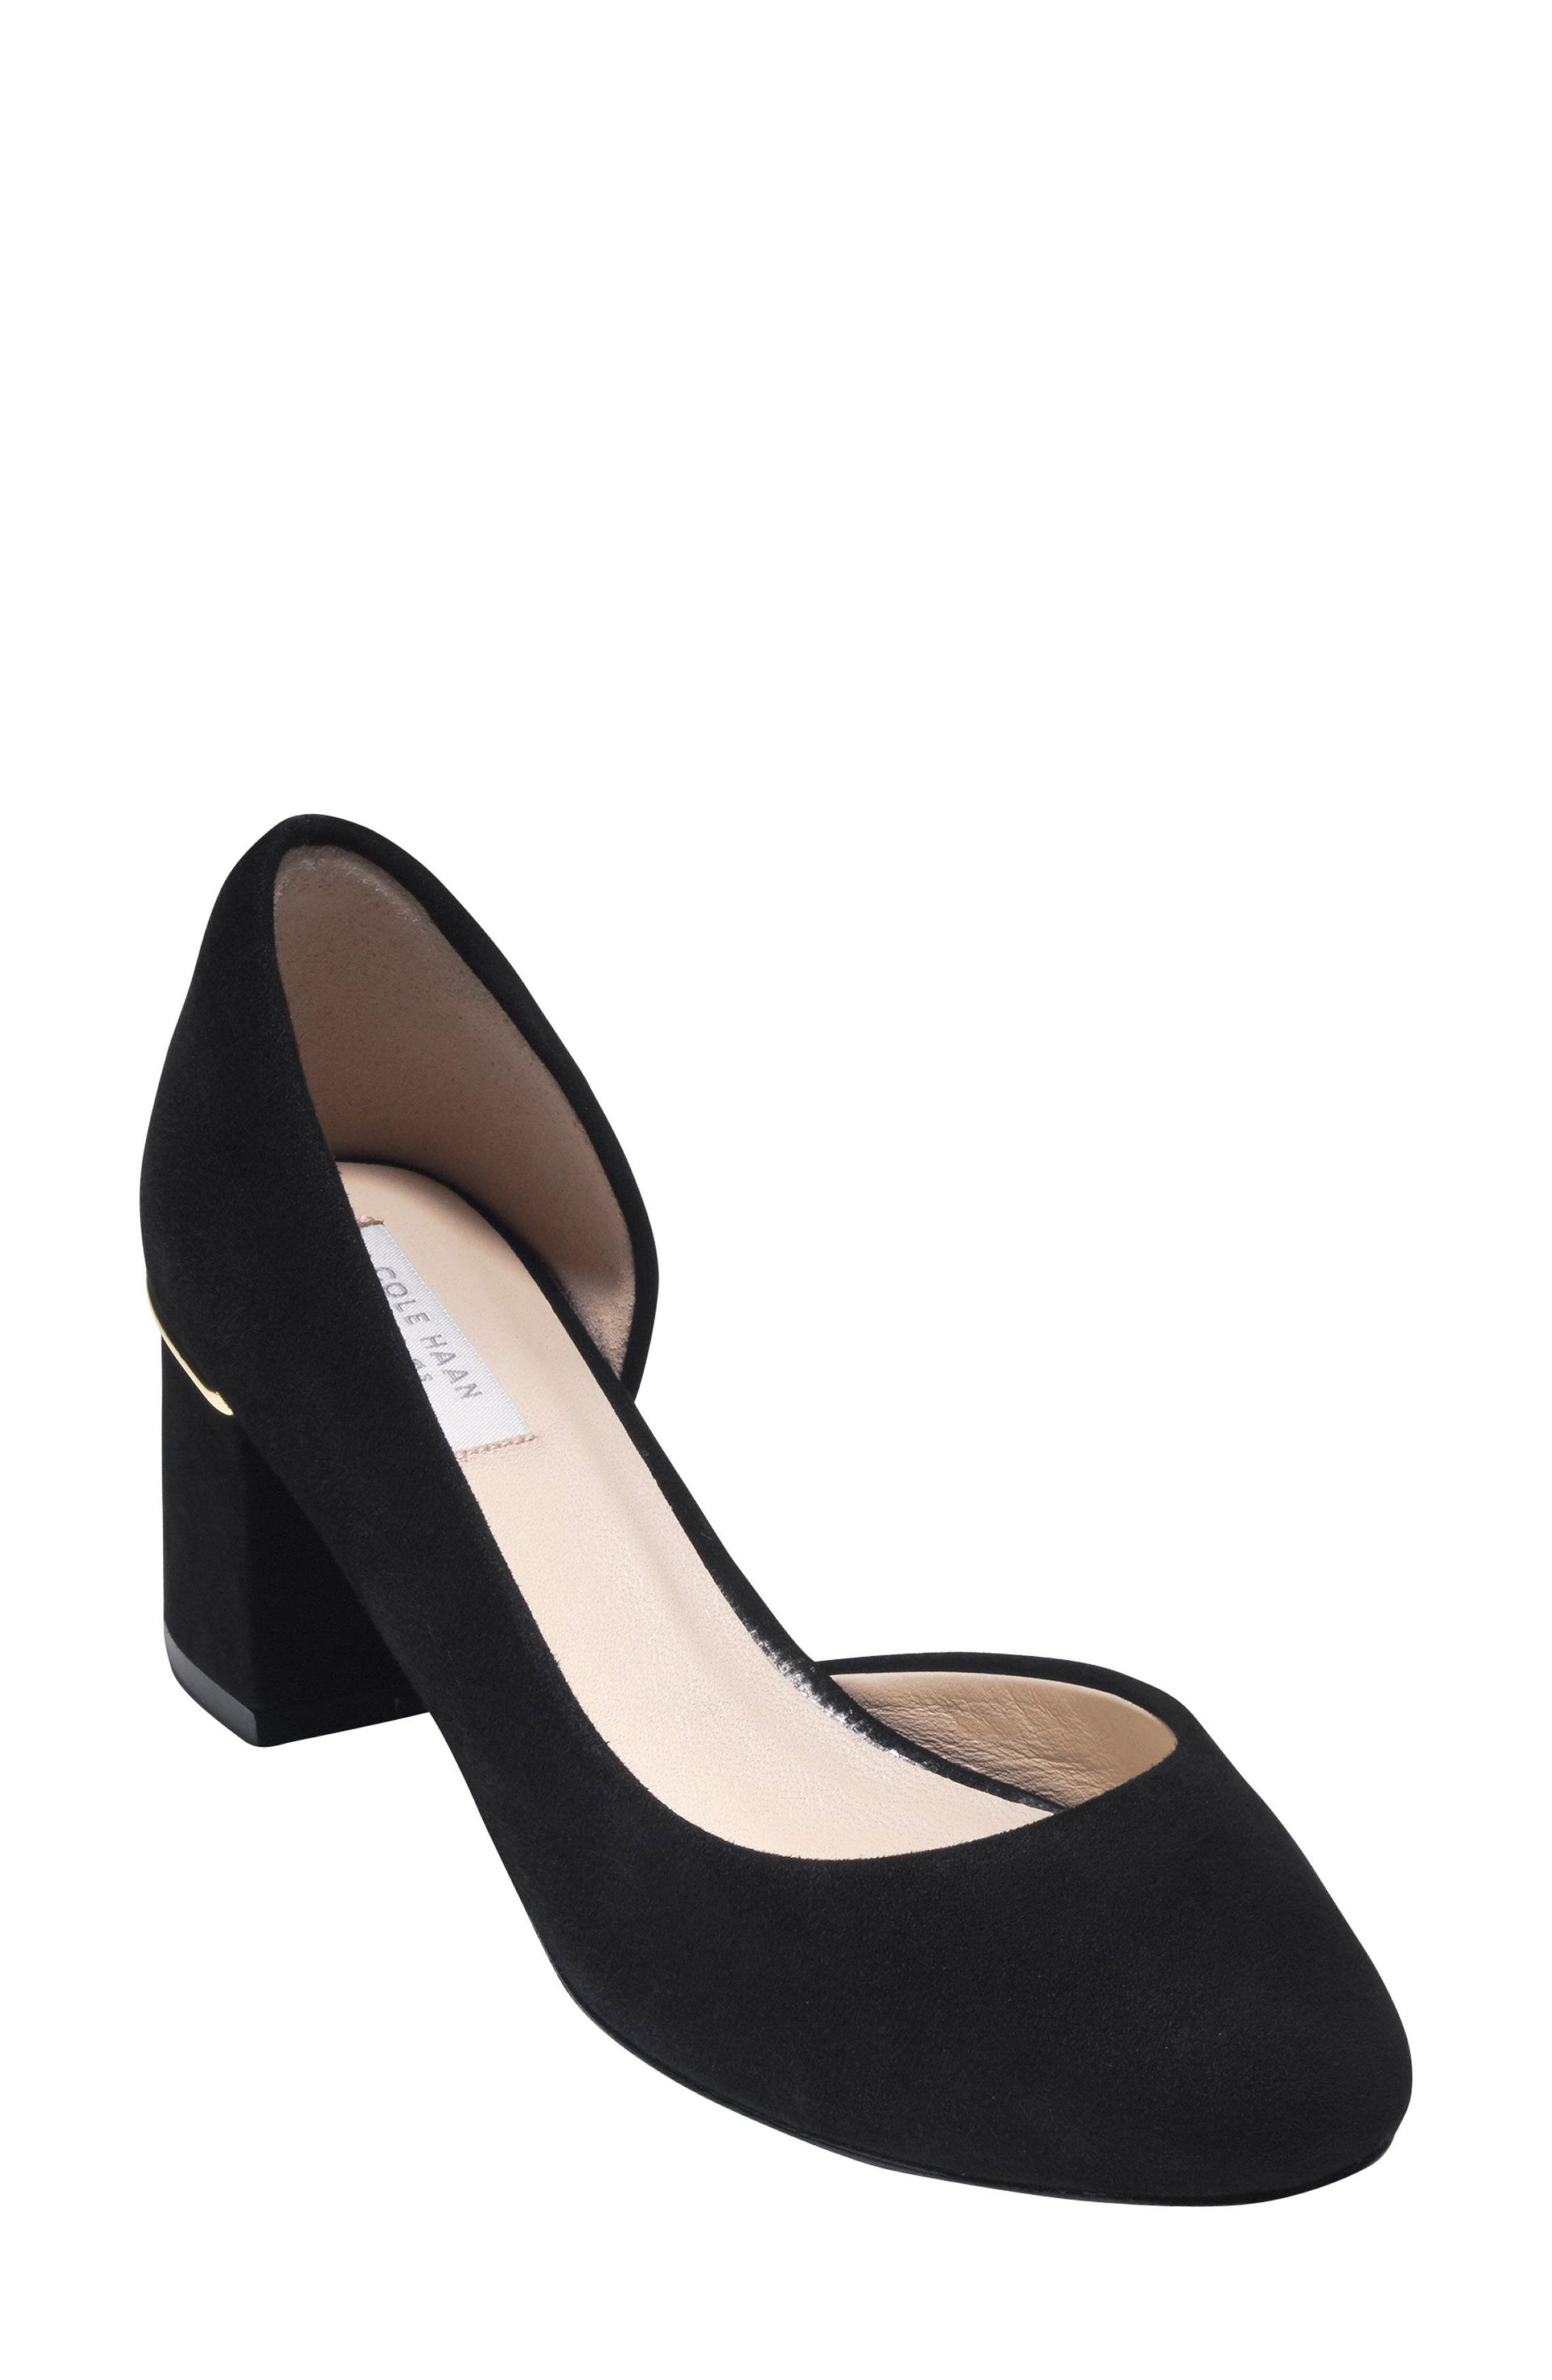 COLE HAAN Laree Half dOrsay Pump